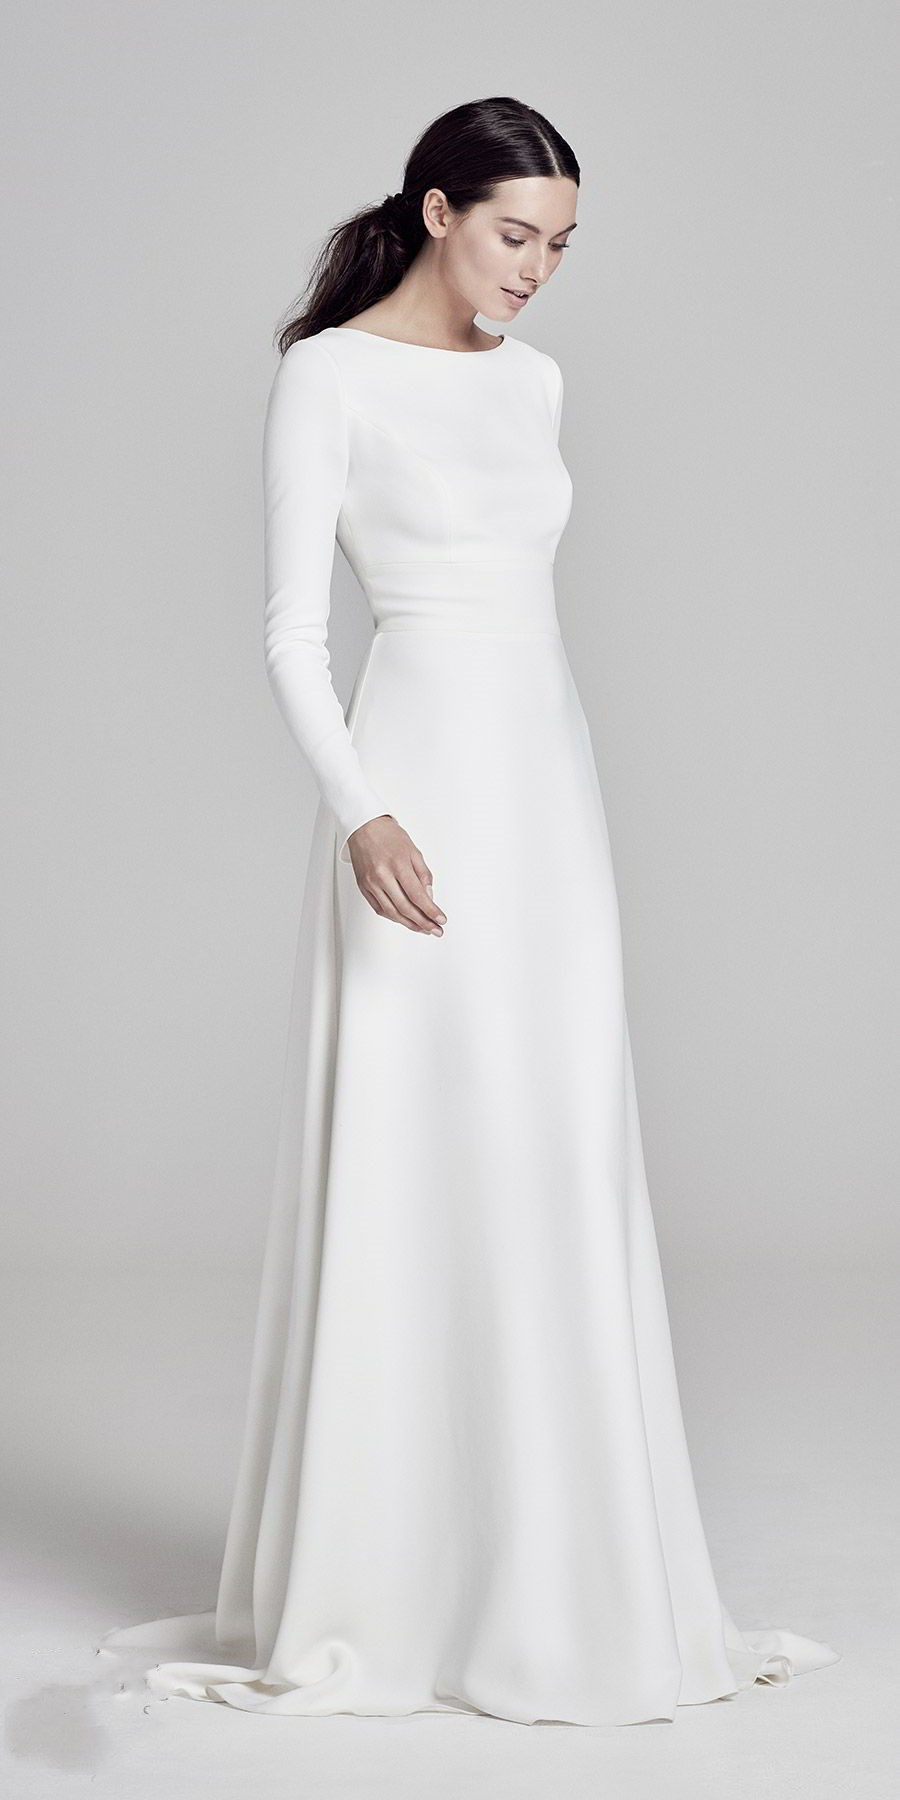 Elegant Satin Floor Length Wedding Dress,Simple Round Neck Long Sleeves Bridal Dress.W651 -   18 dress Simple pictures ideas